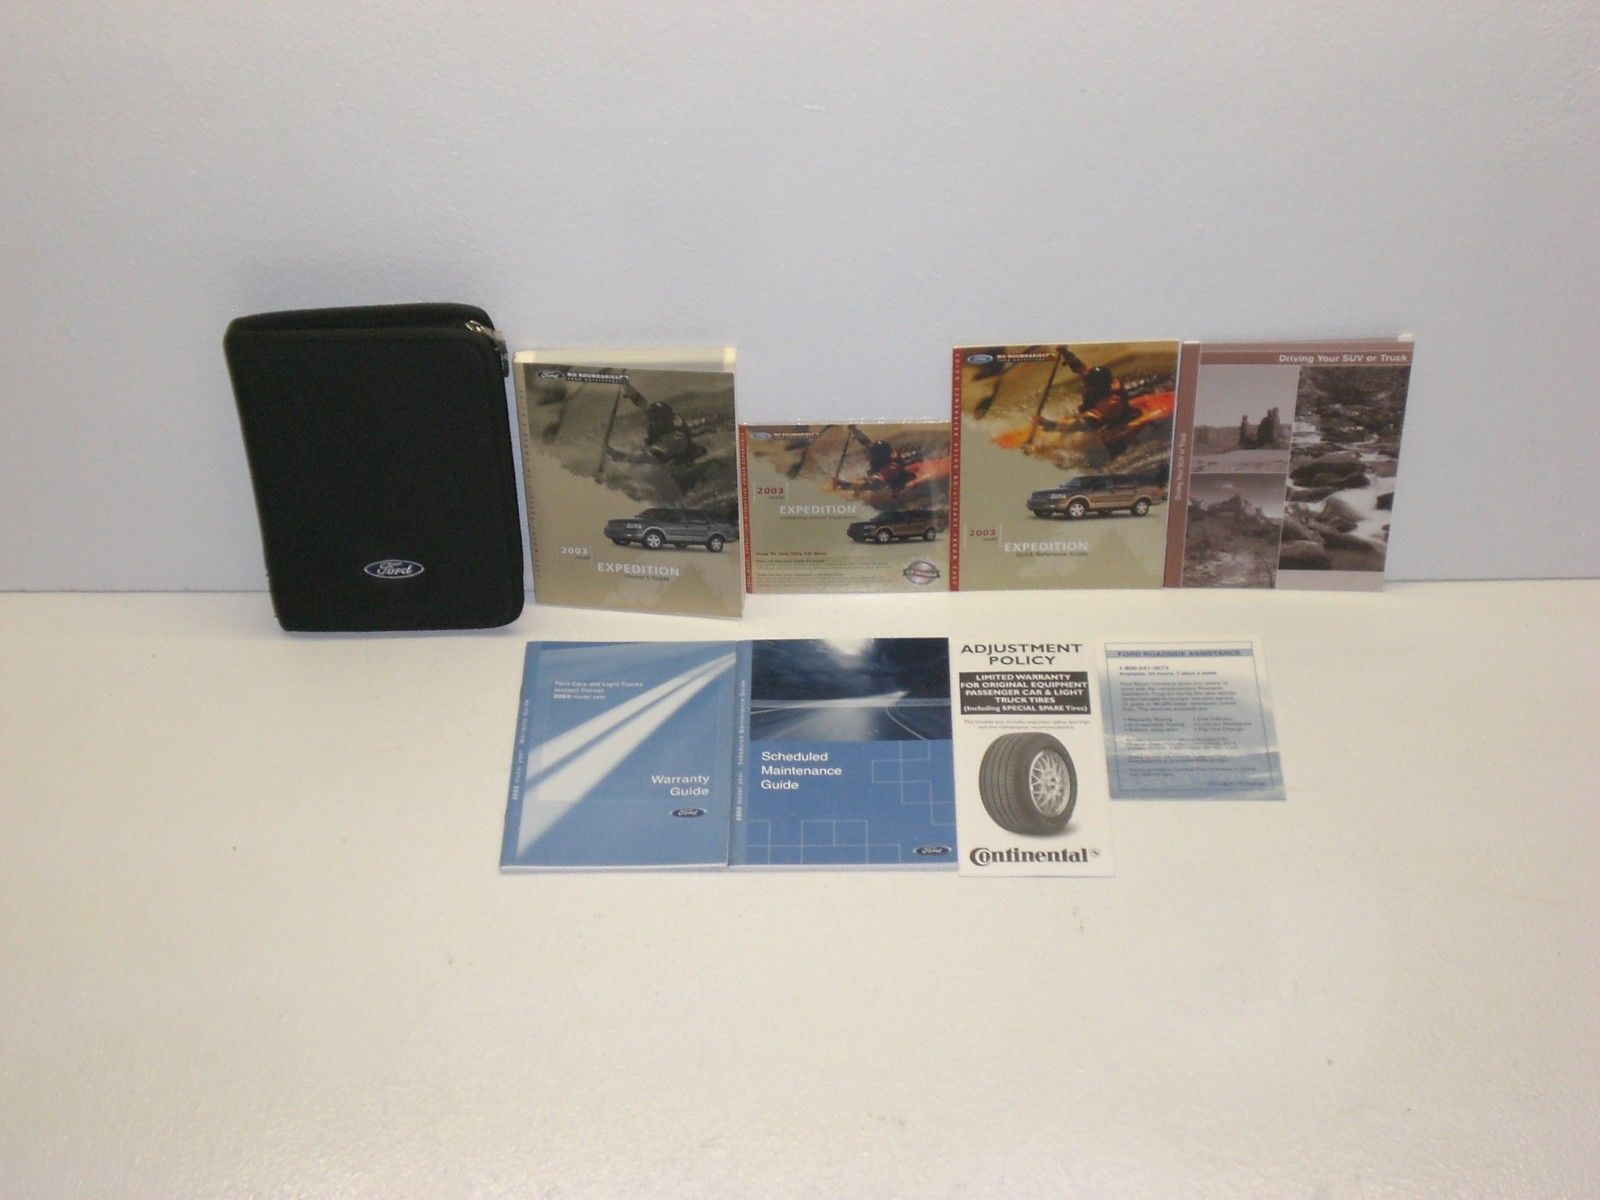 2003 ford expedition owners manual set w cd ebay link  [ 1600 x 1200 Pixel ]